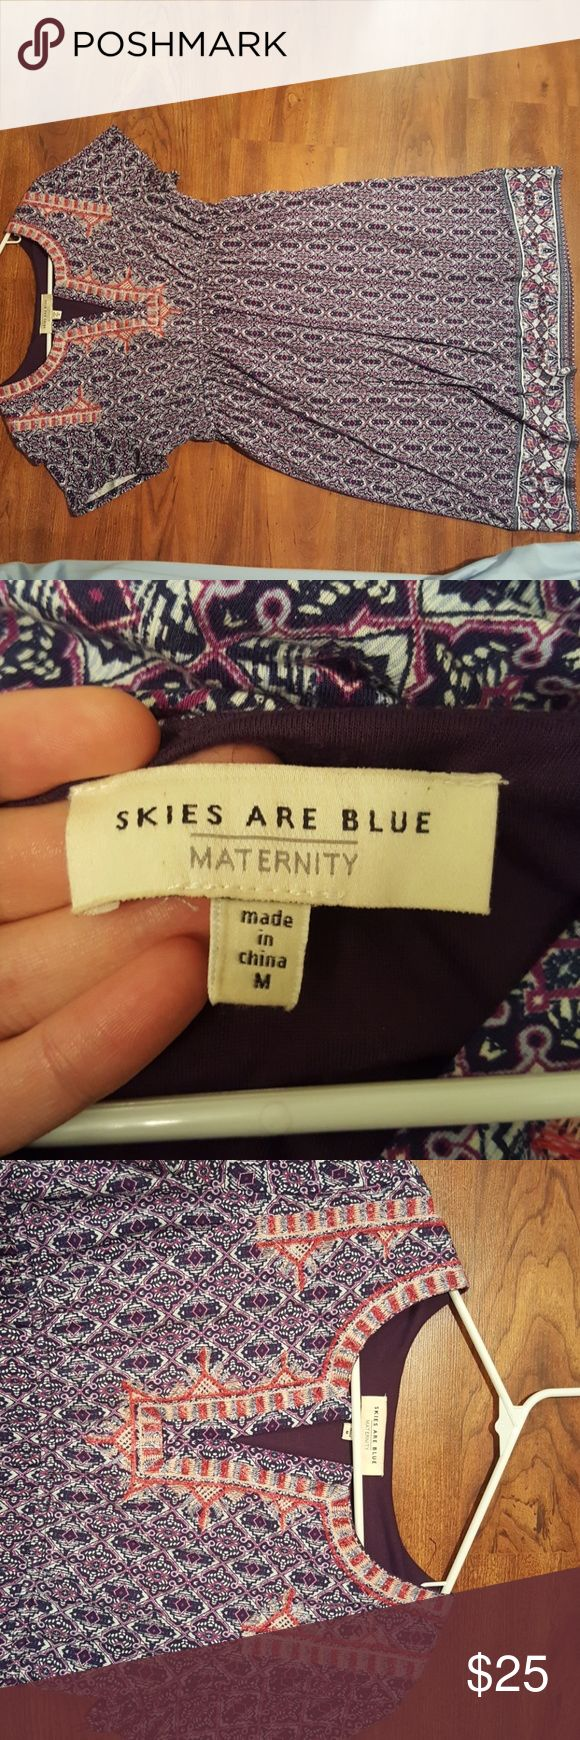 Skies Are Blue Maternity Dress This dress has been only worn a couple times during my pregnancy for photos. It's in great condition, very well made, and good material! I'm 5'10 and this dress is about at my knees. Skies Are Blue Dresses Midi